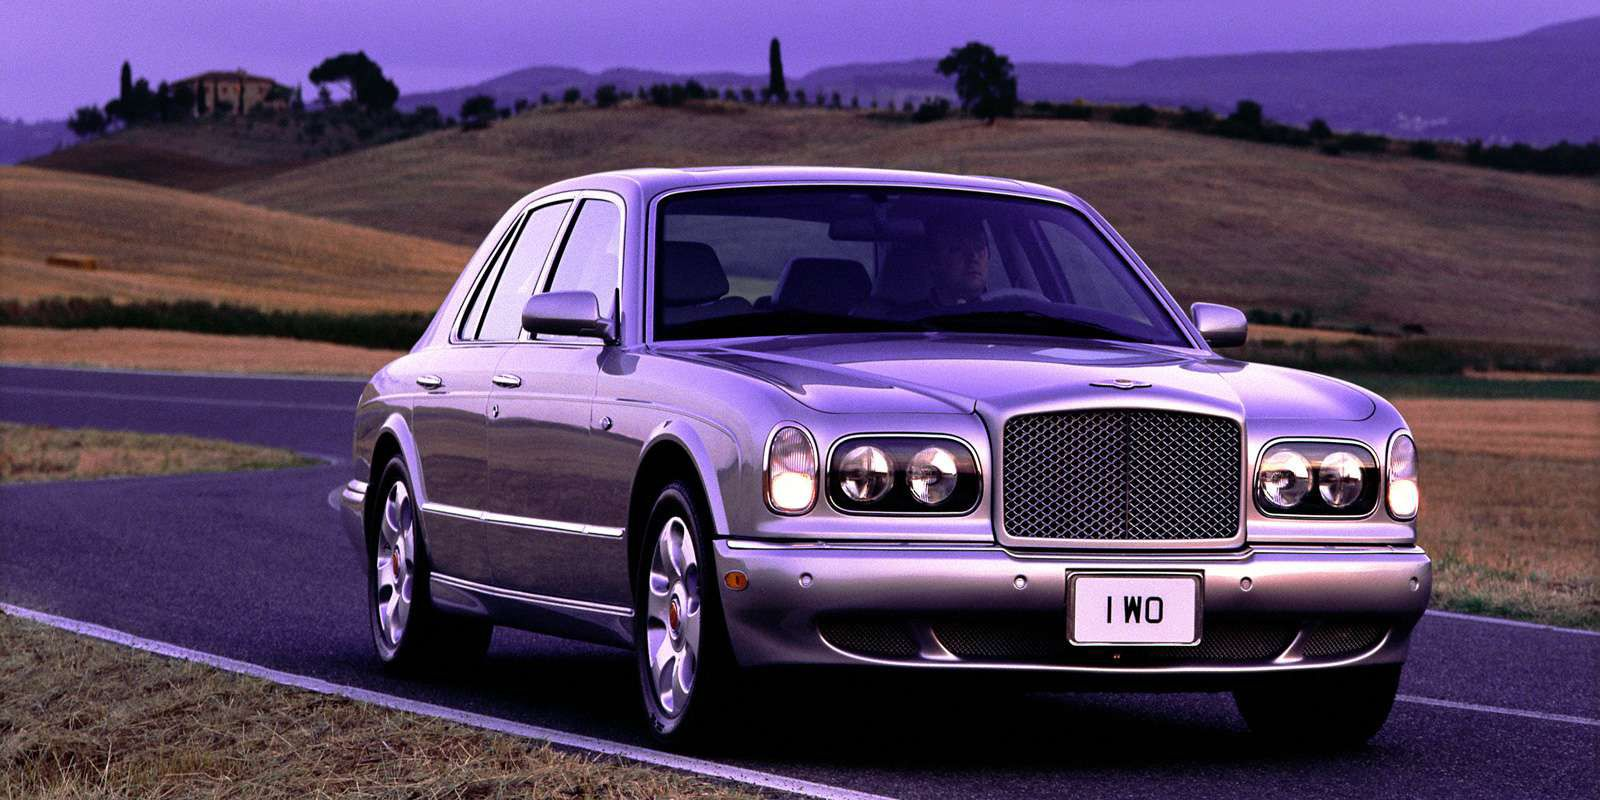 """<p>It's big, it's long, it's heavy, it's powerful, and it's full of all the most luxurious features that existed in the late 1990s. The Arnage has also been hit with some serious depreciation, which means you can tell people <a href=""""http://www.auto.com/cars/bentley-arnage-1999-scblb51e7xcx01385"""" target=""""_blank"""">you own a $200,000+ Bentley</a> for less than what it would cost to buy a base model Toyota Camry.</p>"""